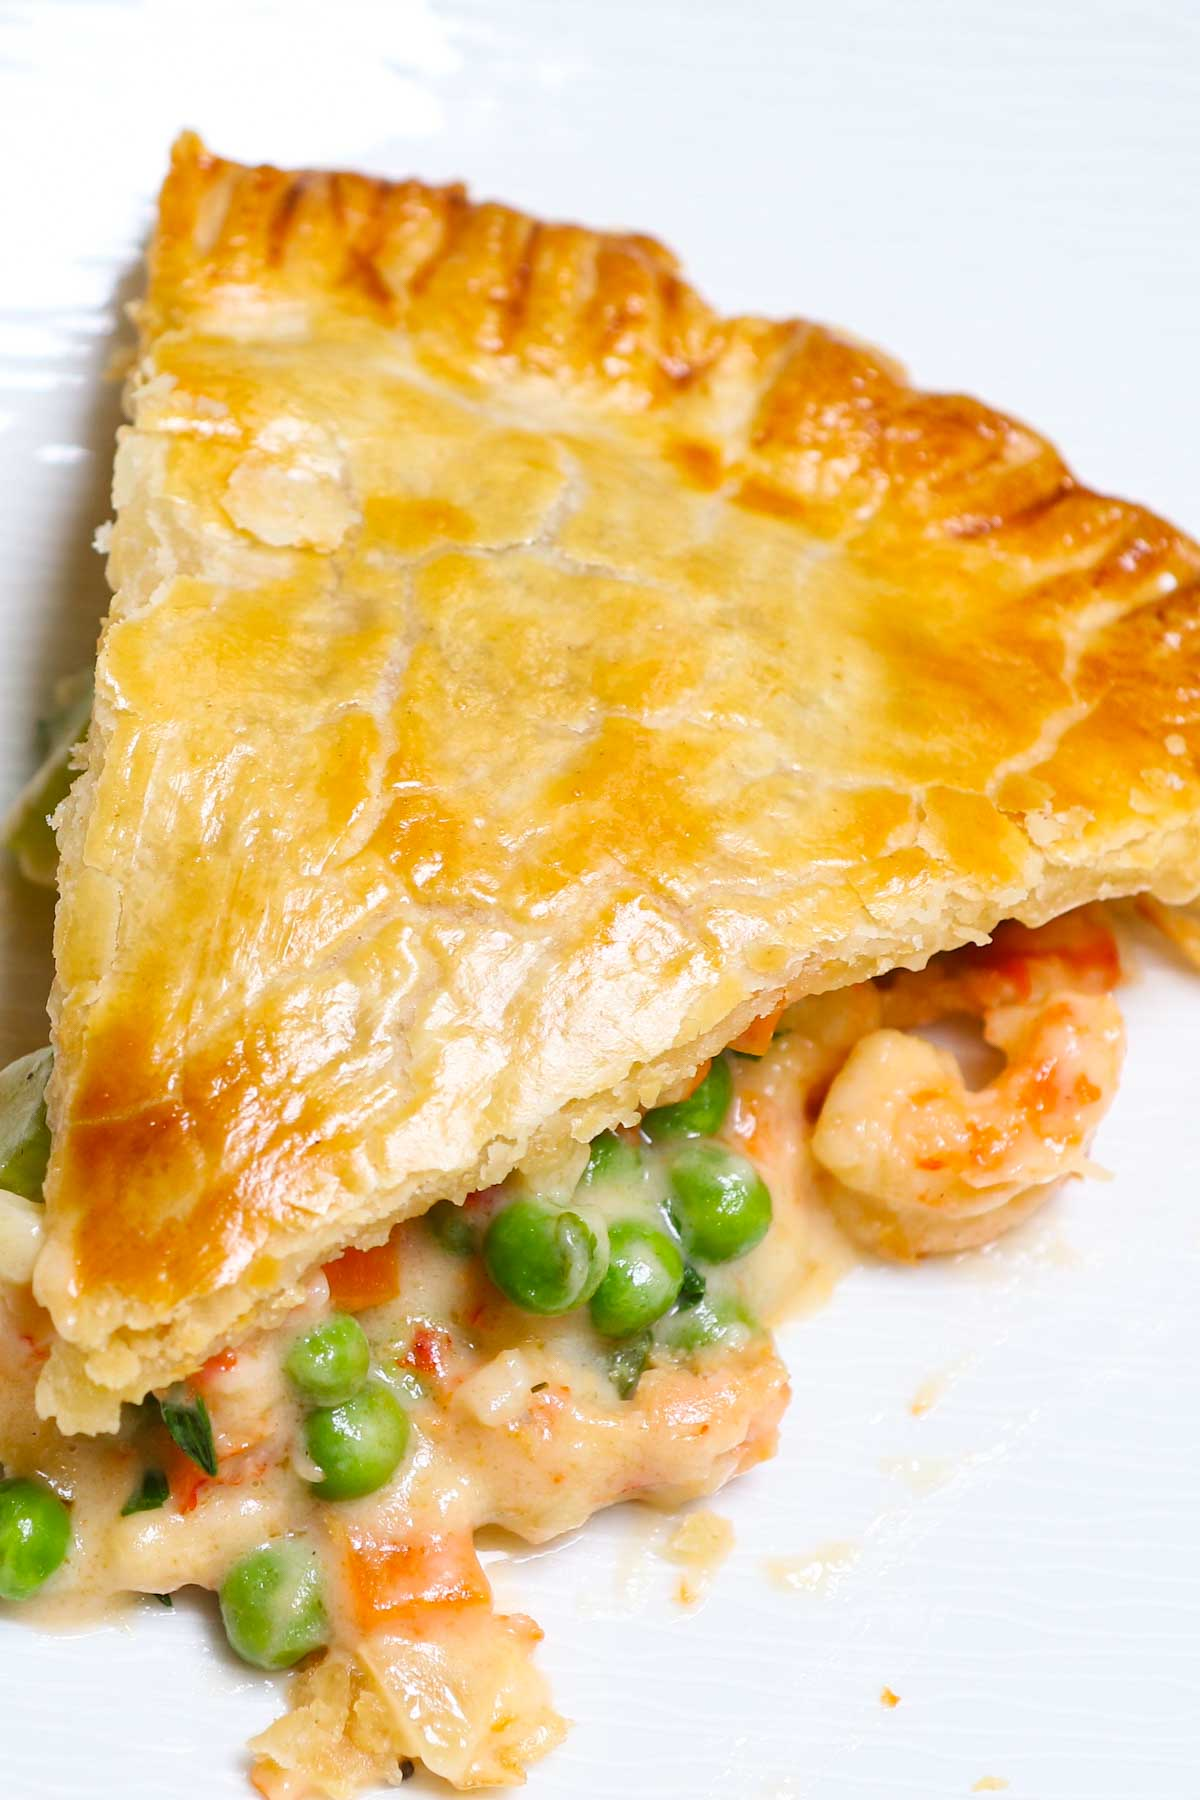 Crawfish Pie is the ultimate comfort food in Louisiana! This famous Cajun dish is a delicious, flaky crawfish pot pie loaded with succulent crawfish tail meat and fresh veggies. It takes just a few ingredients to make a batch at home!